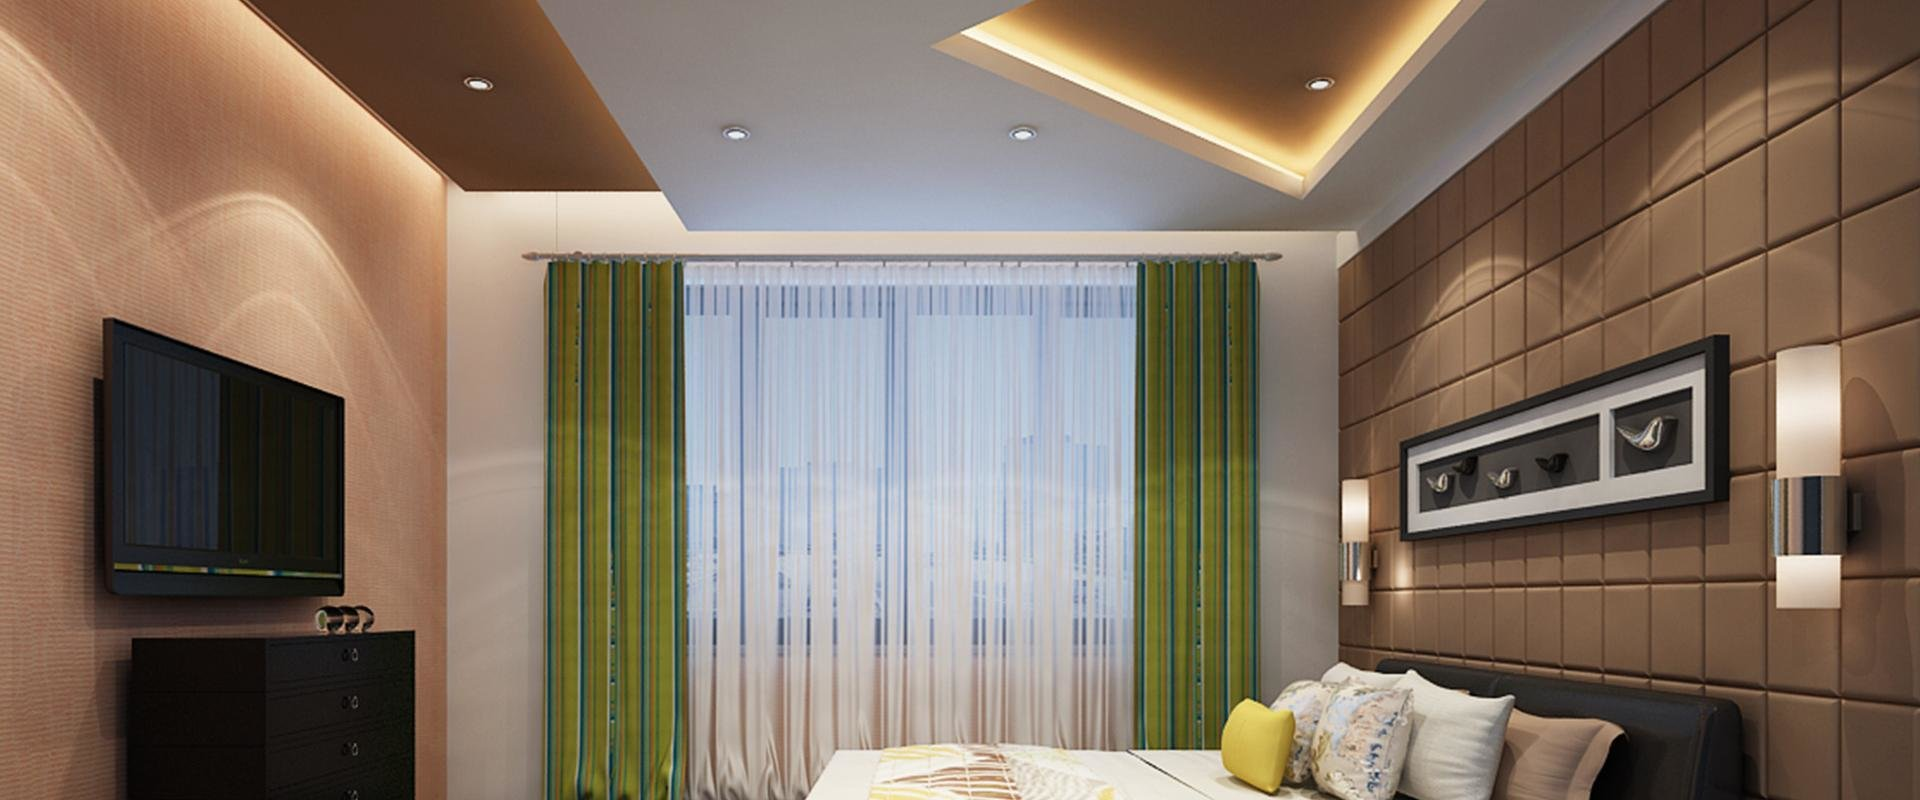 Best Bedroom False Ceiling Gypsum Board Drywall Plaster With Pictures